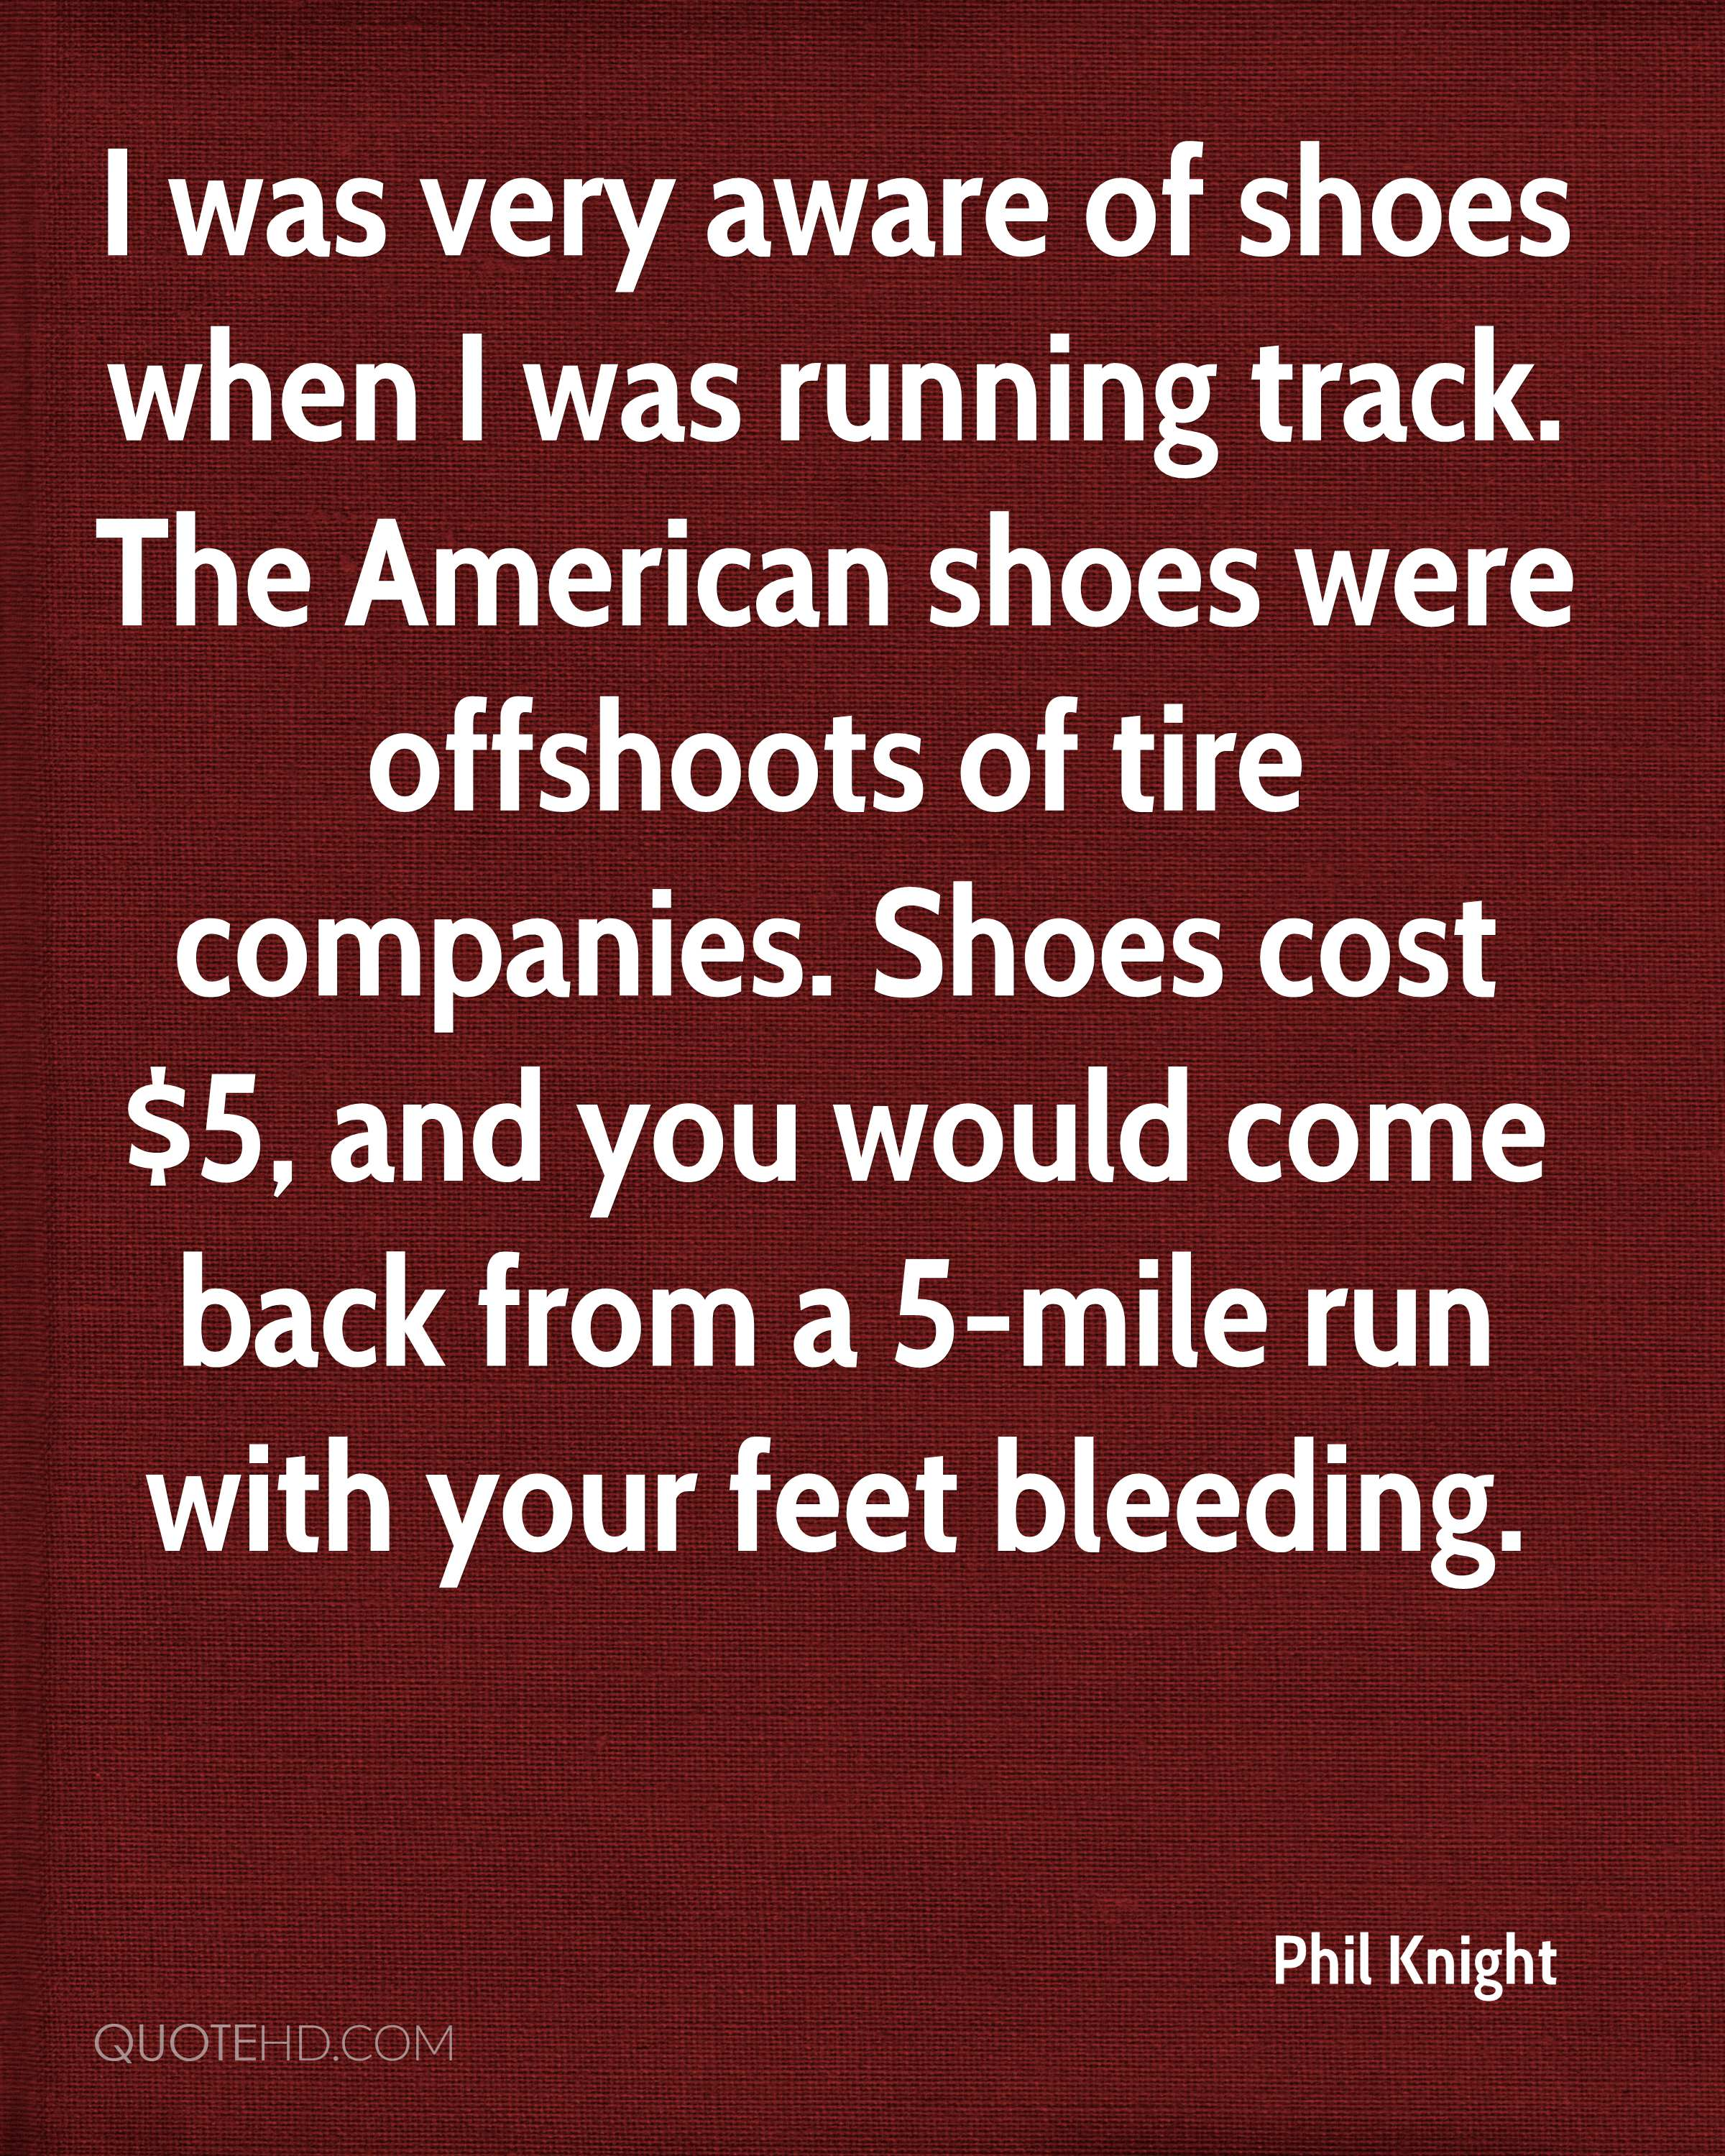 I was very aware of shoes when I was running track. The American shoes were offshoots of tire companies. Shoes cost $5, and you would come back from a 5-mile run with your feet bleeding.